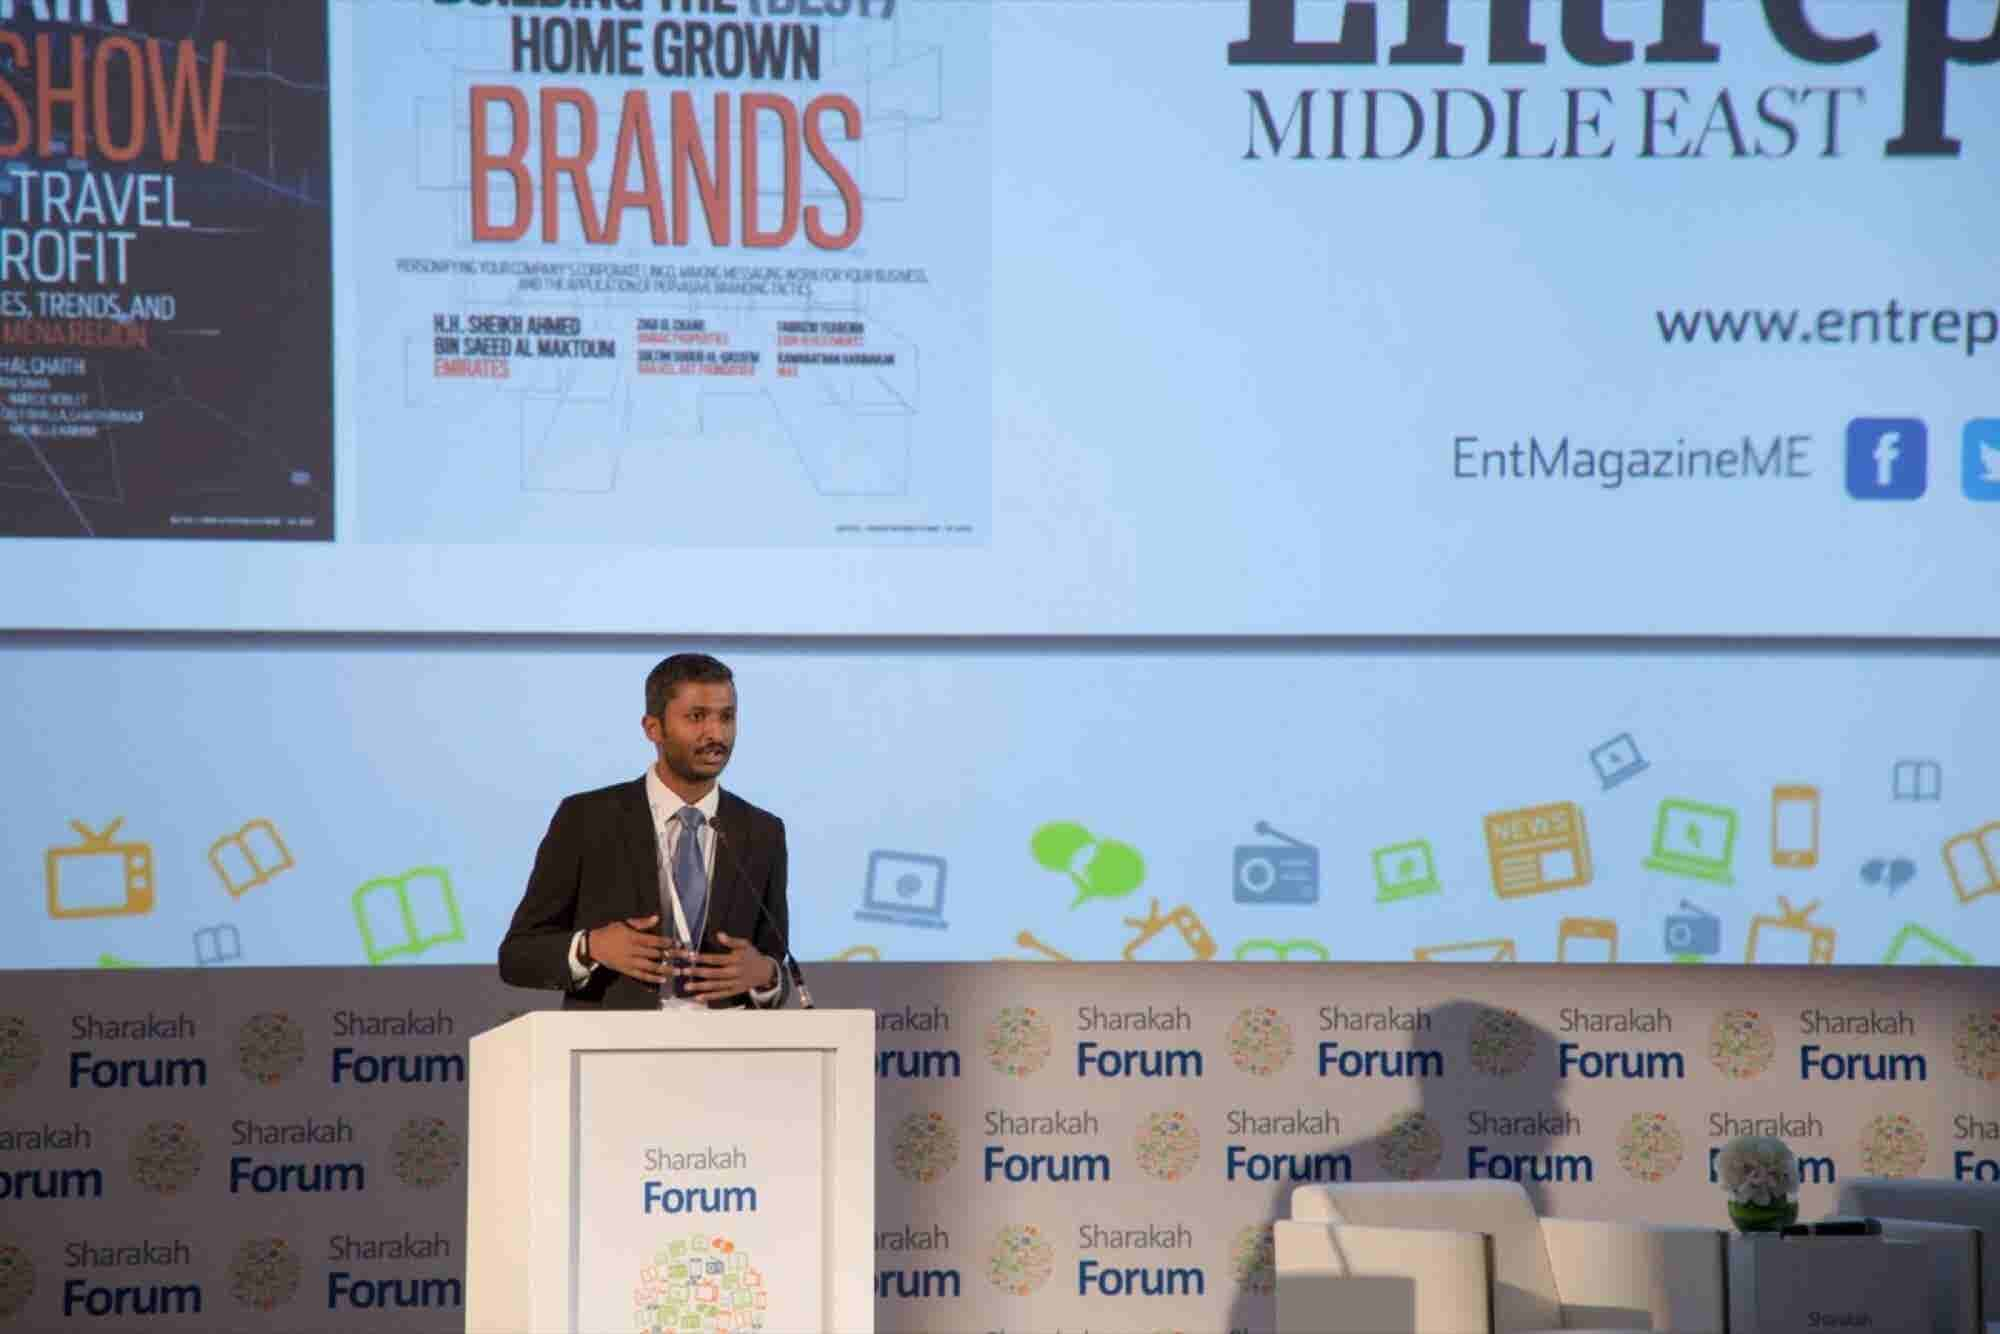 Change Is Good: Entrepreneur Middle East Has A New Editor-in-Chief